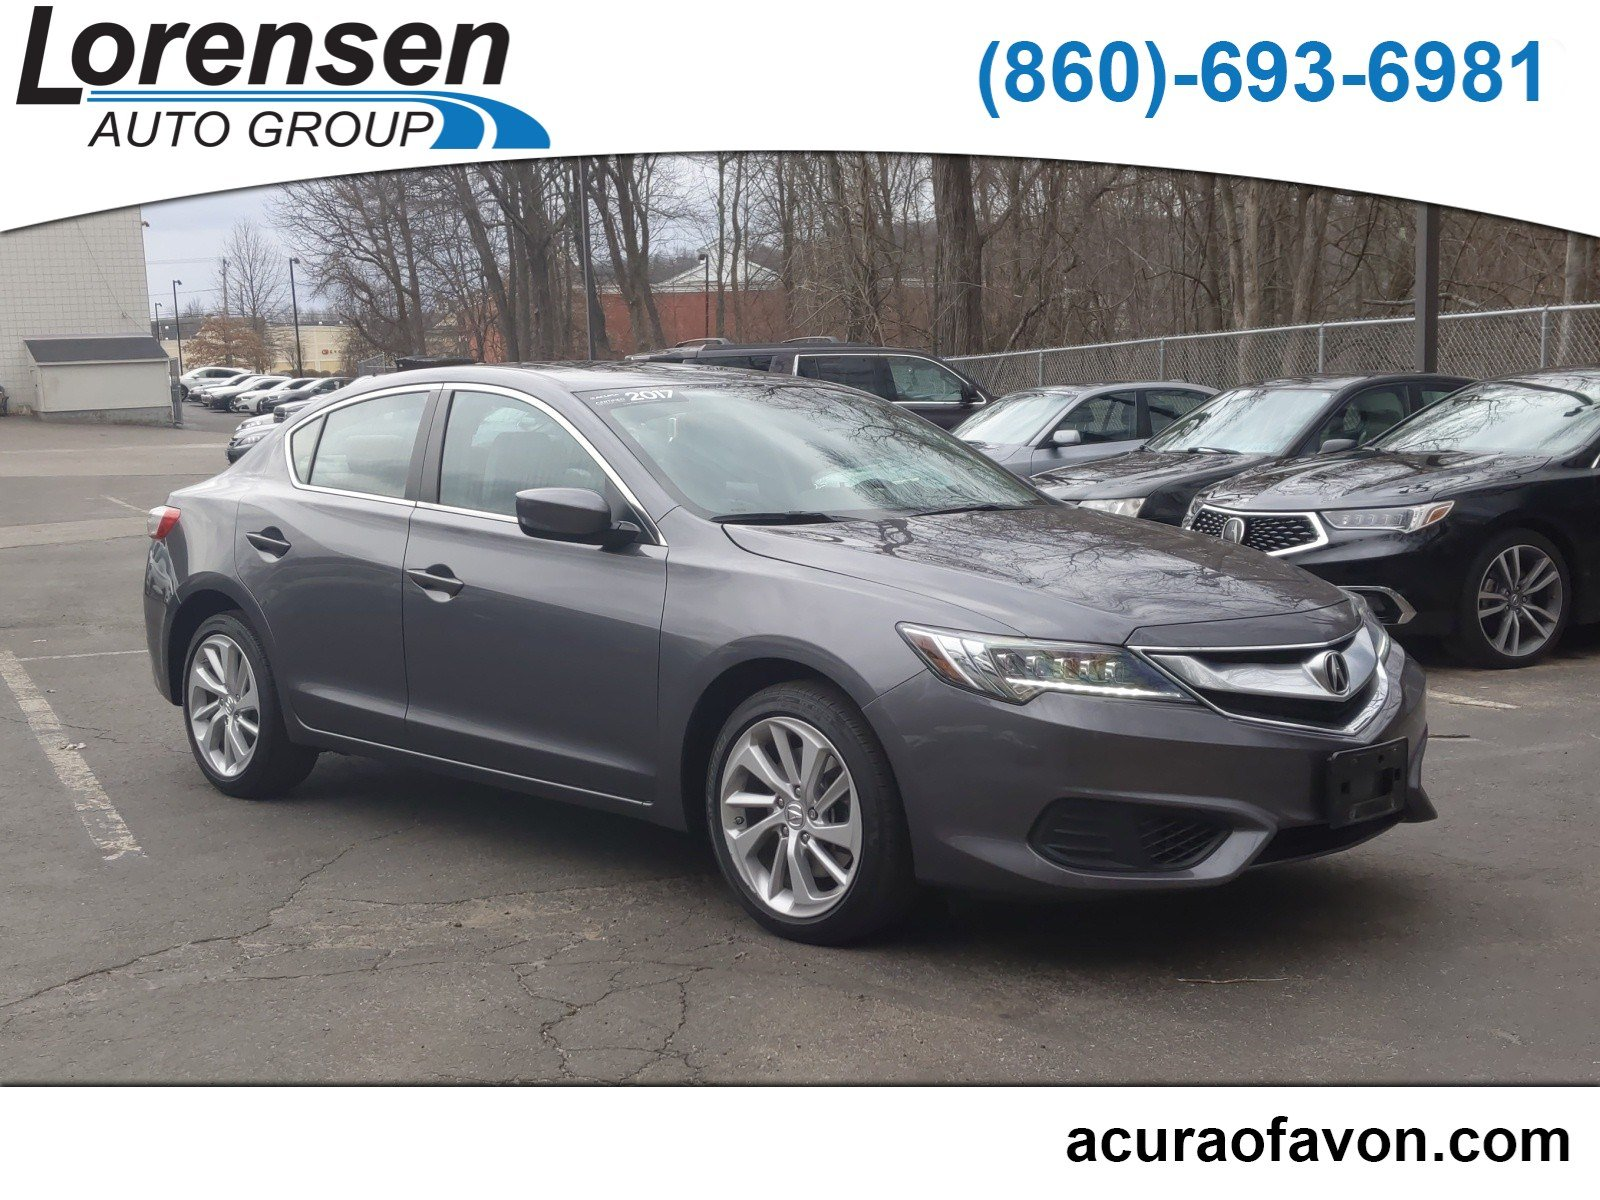 Certified Pre-Owned 2017 Acura ILX Sedan